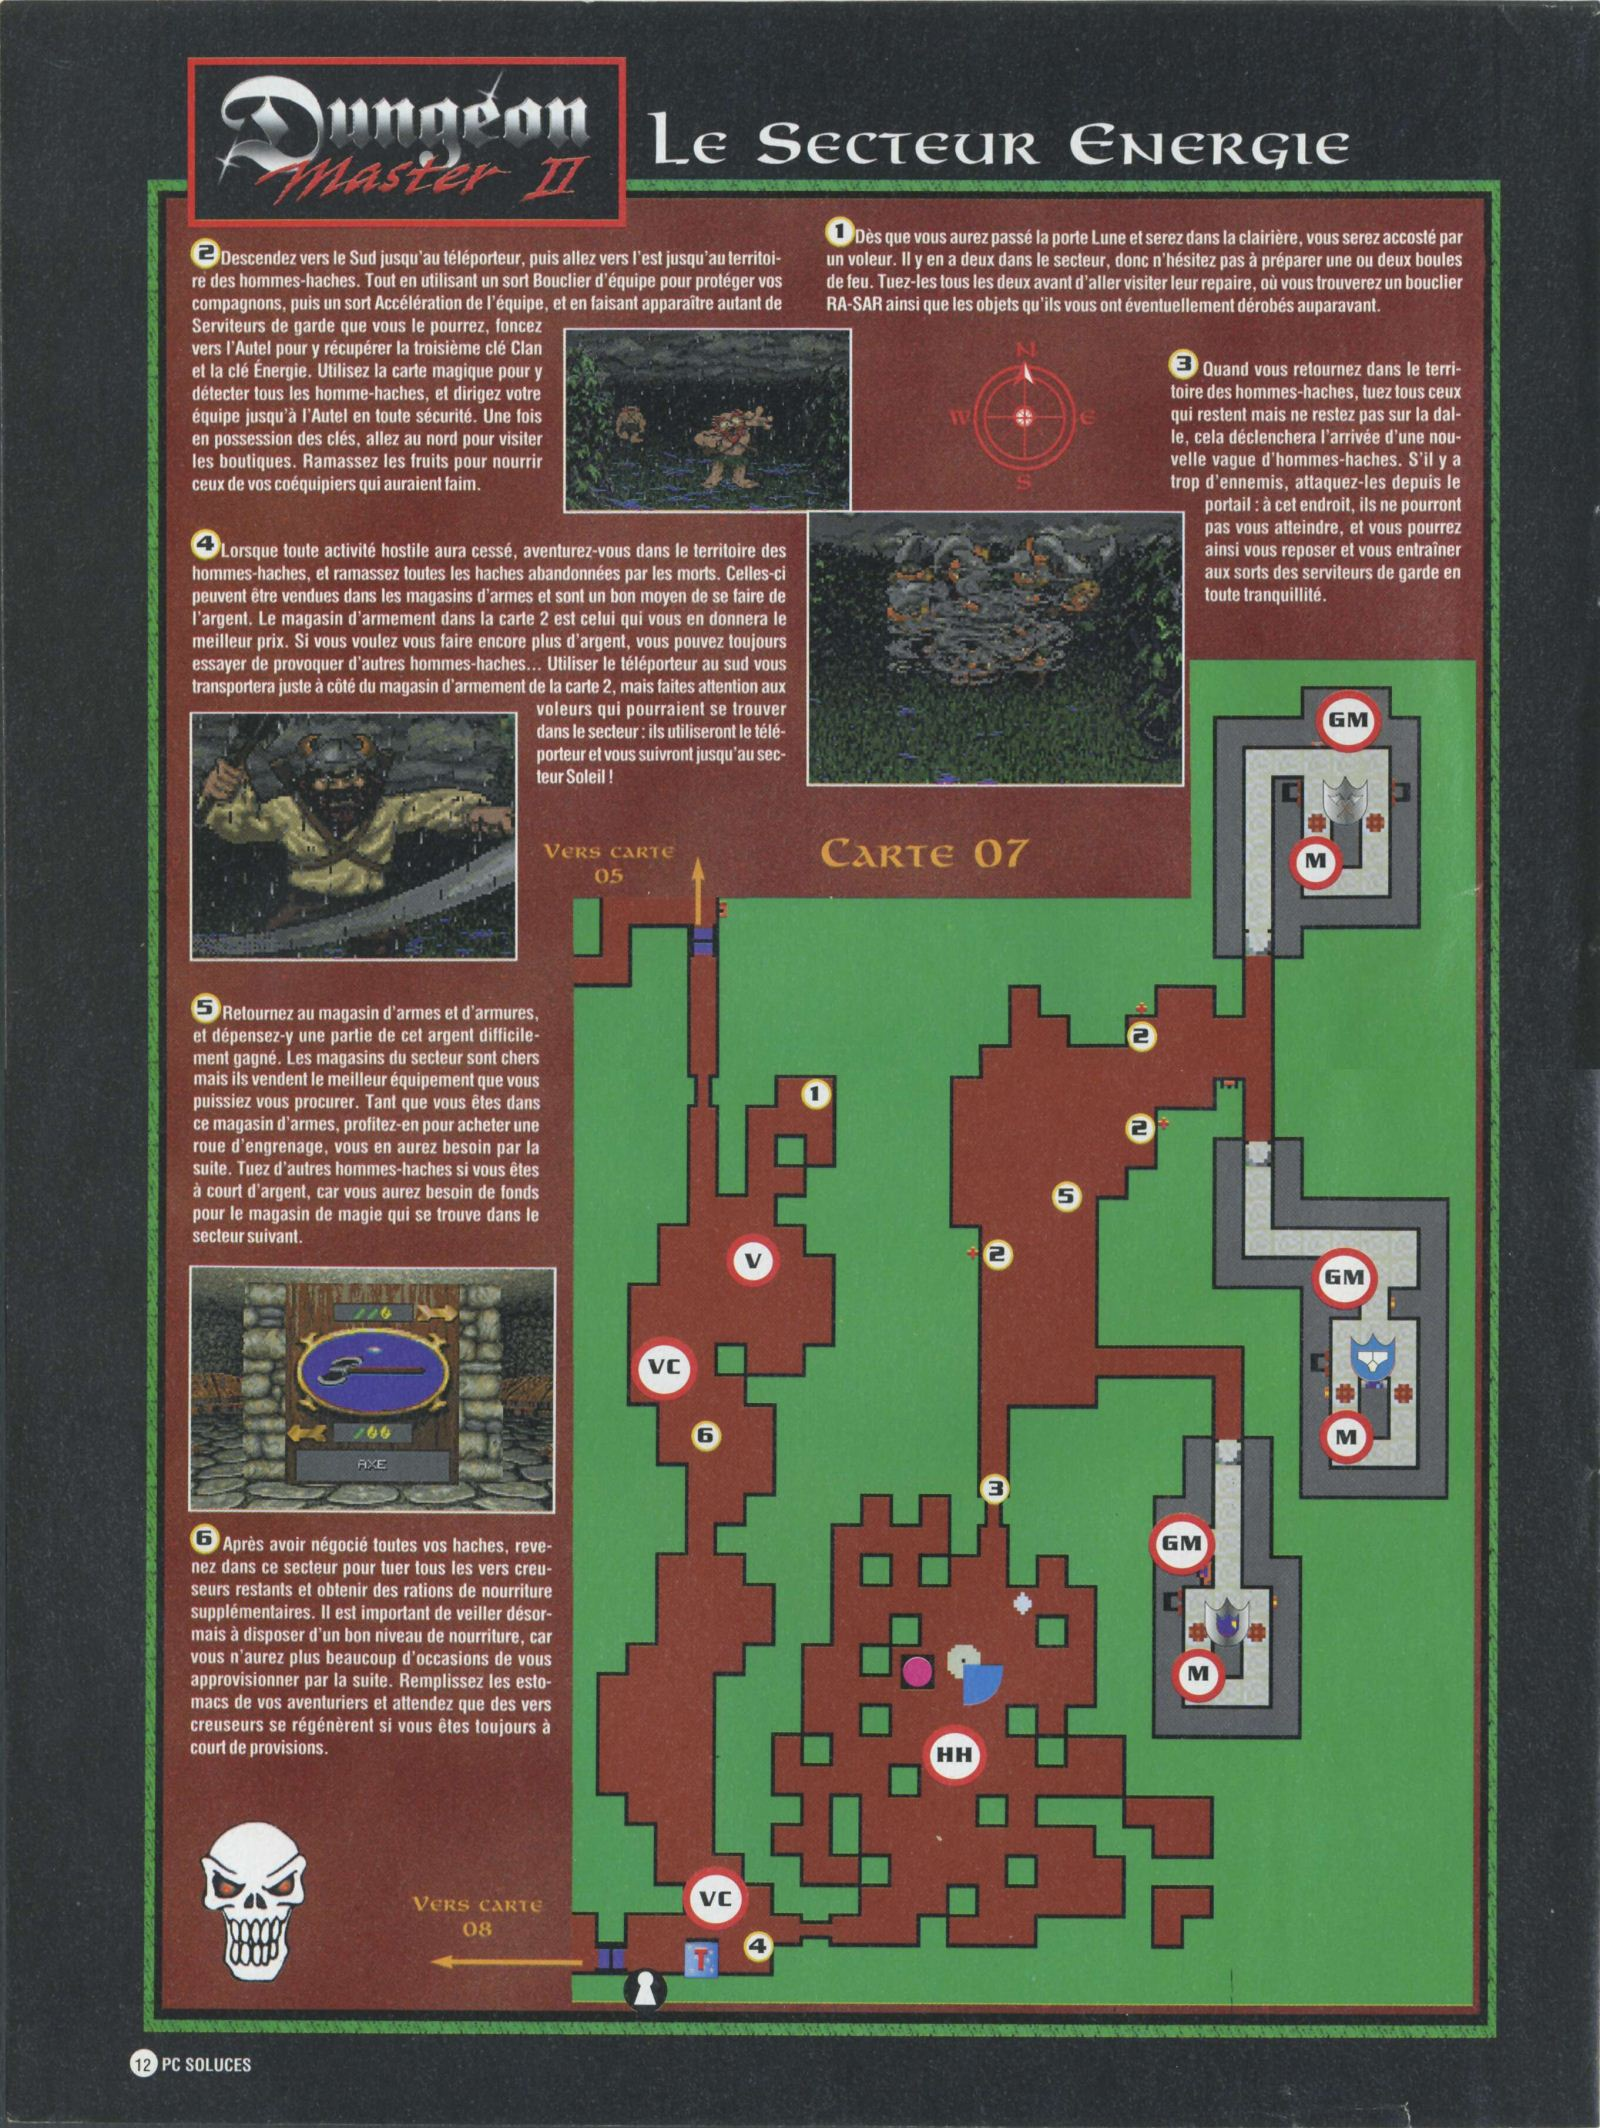 Dungeon Master II solution published in French magazine 'PC Soluces', Issue#1, February-March 1996, Page12